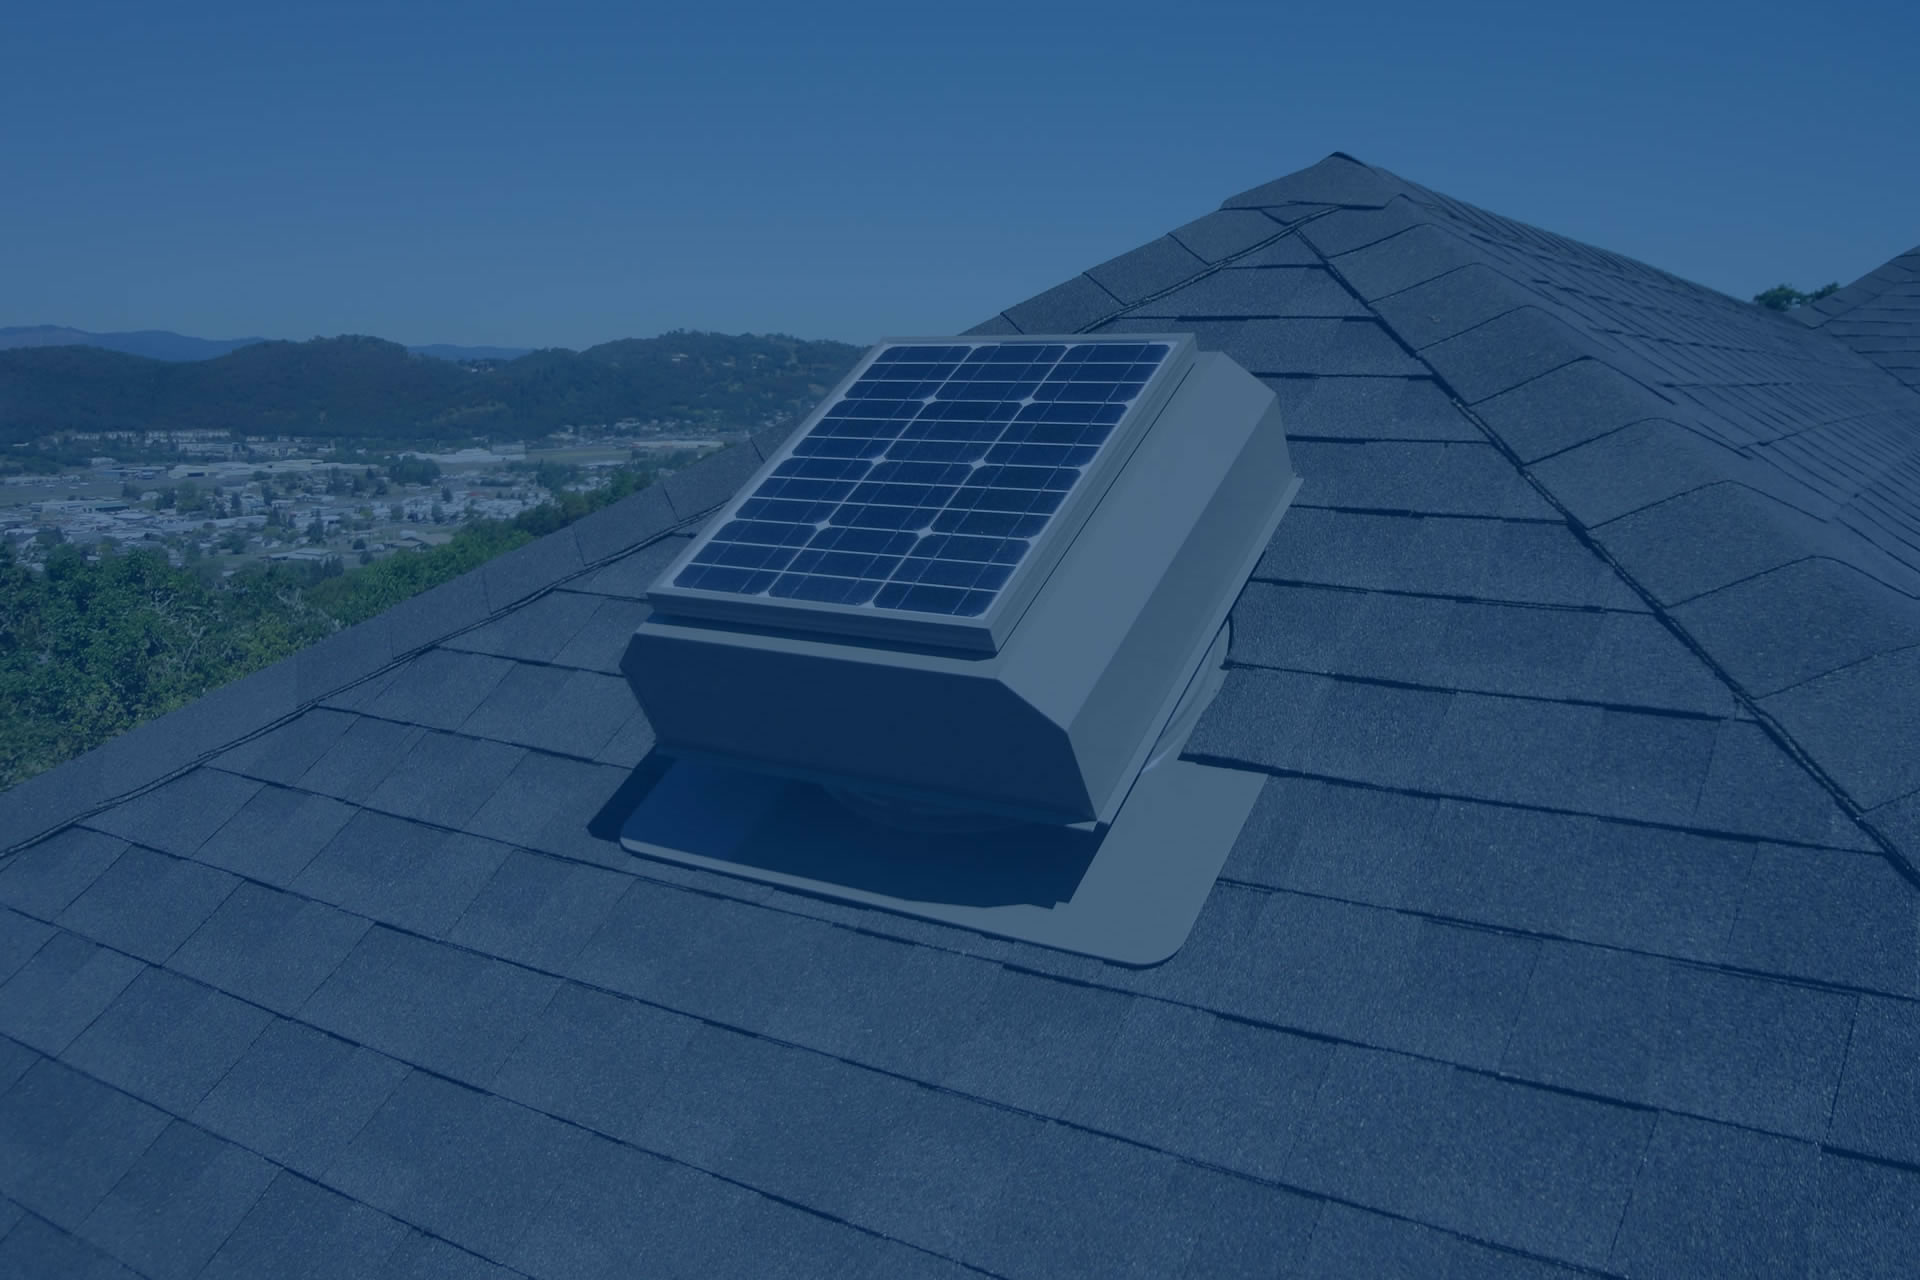 A solar attic vent will effectively cool your attic and save you money on summer cooling bills.